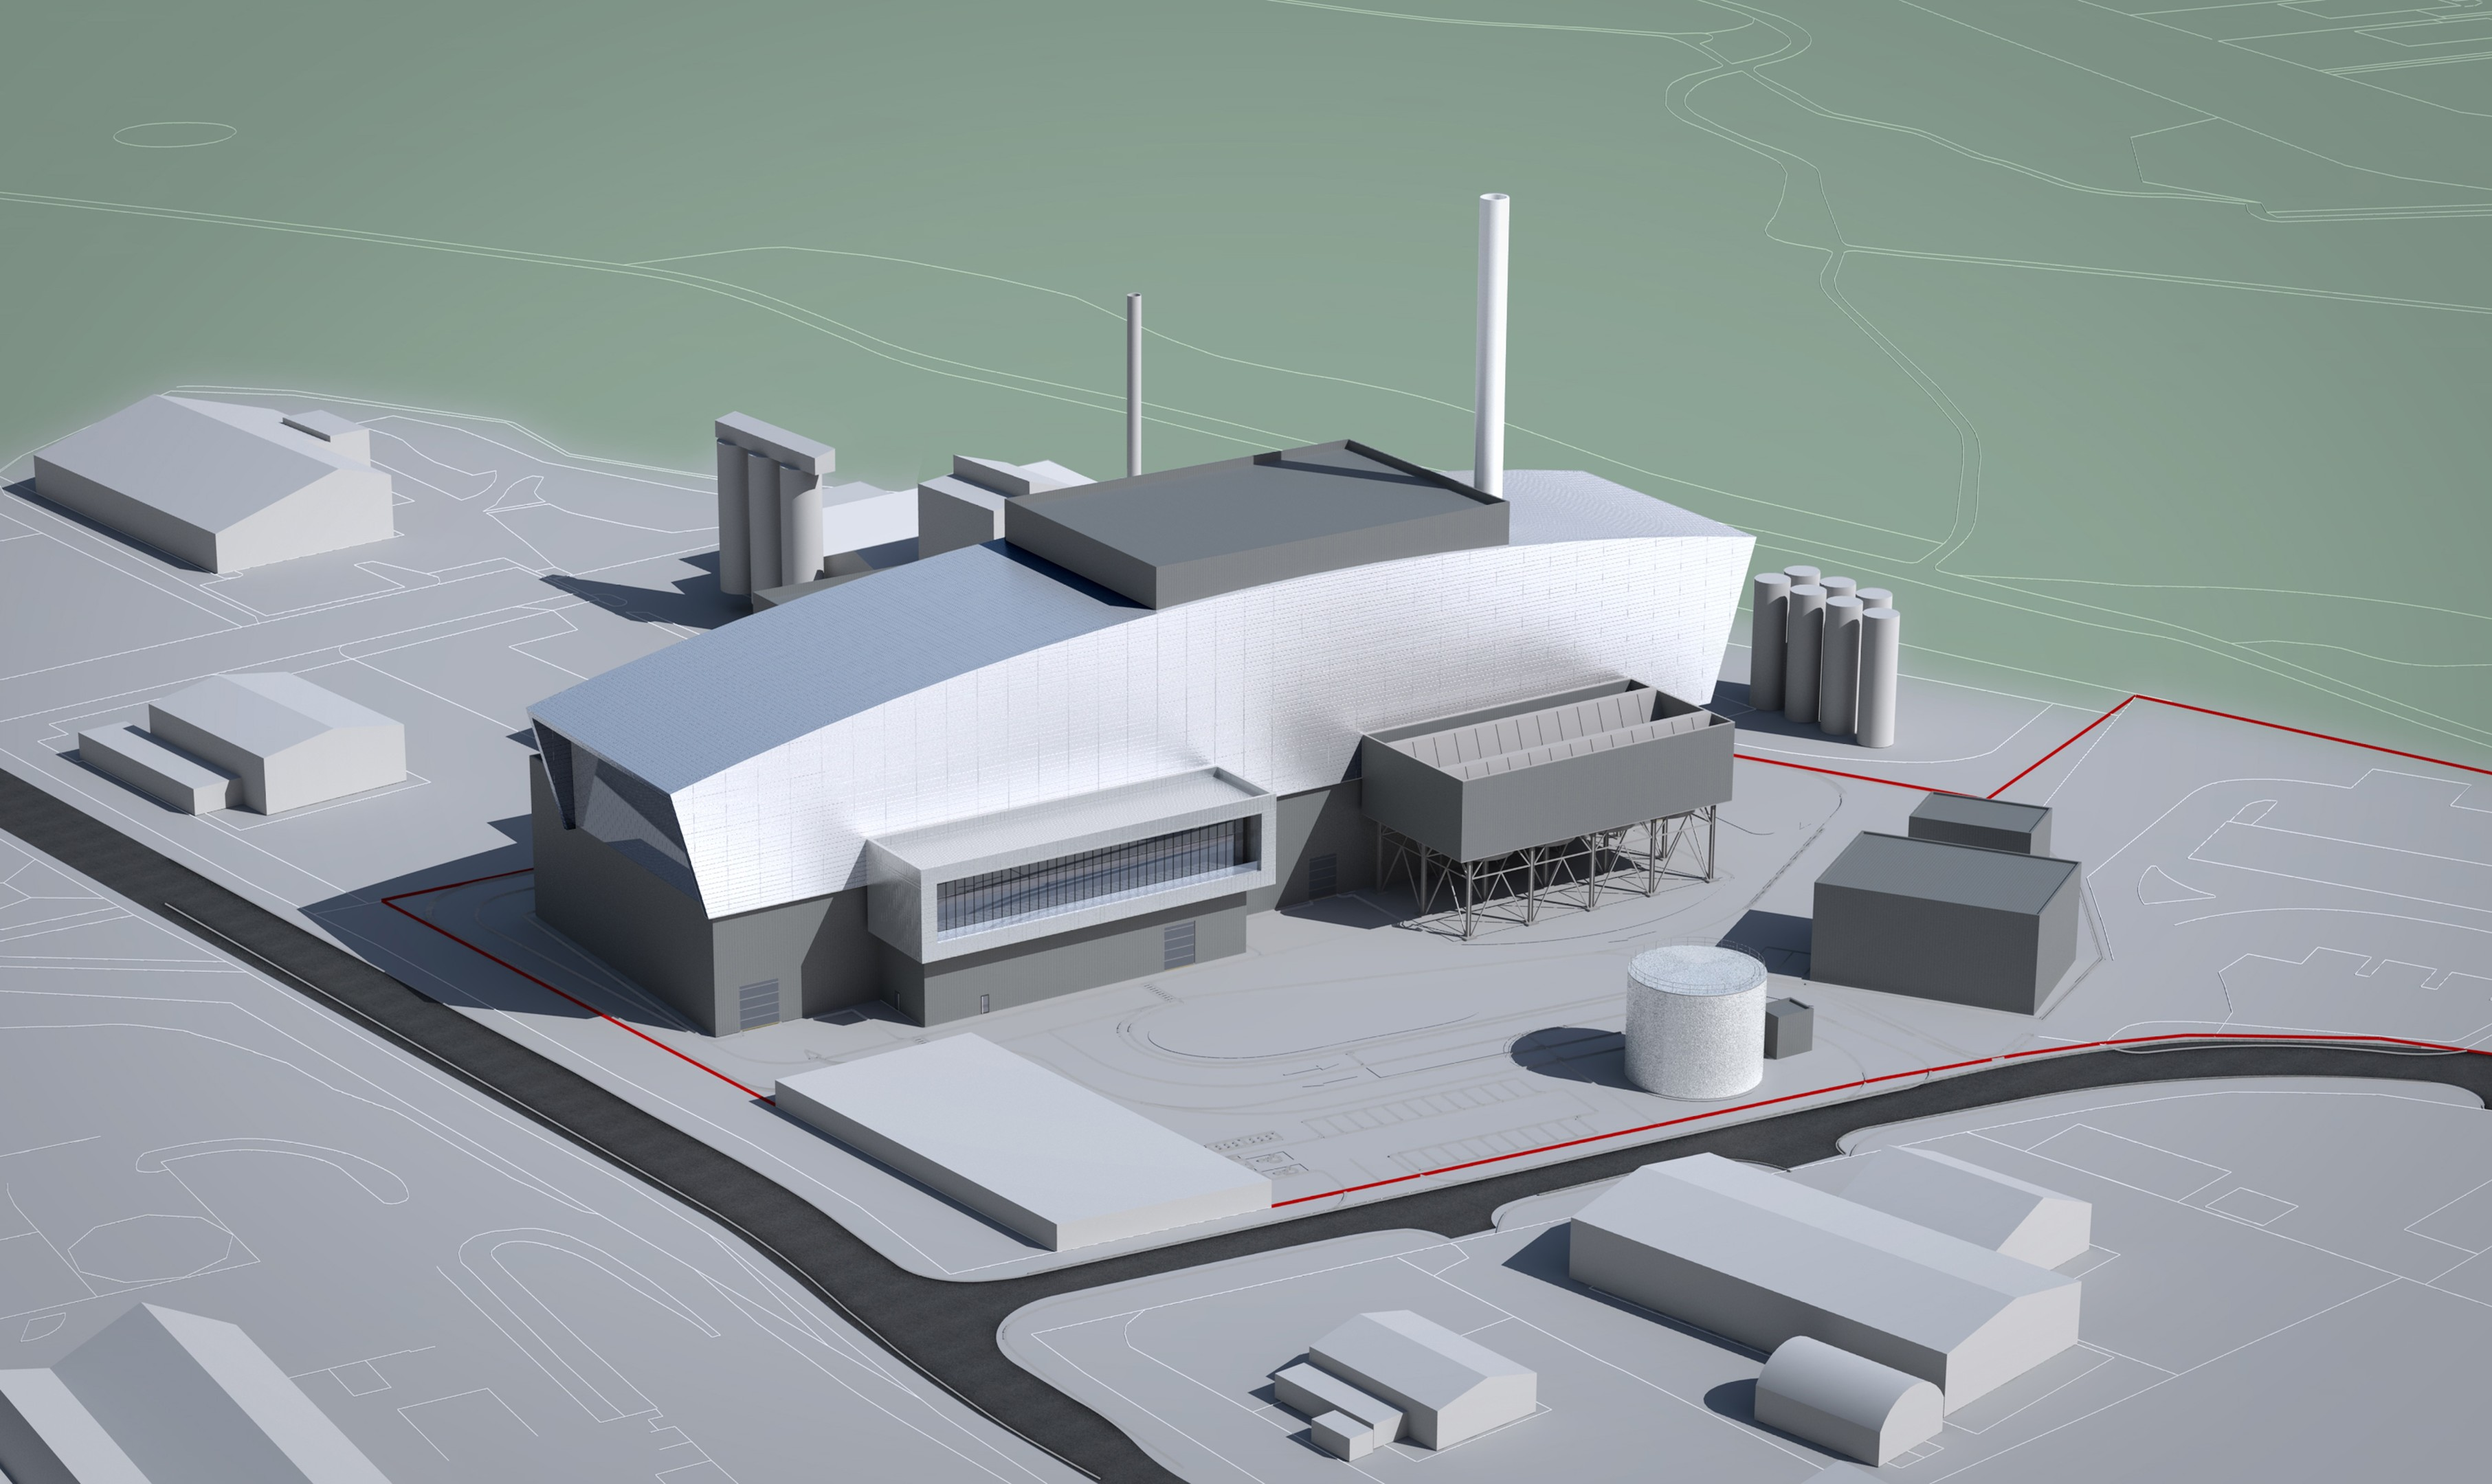 An image showing how the incinerator in East Tullos could look